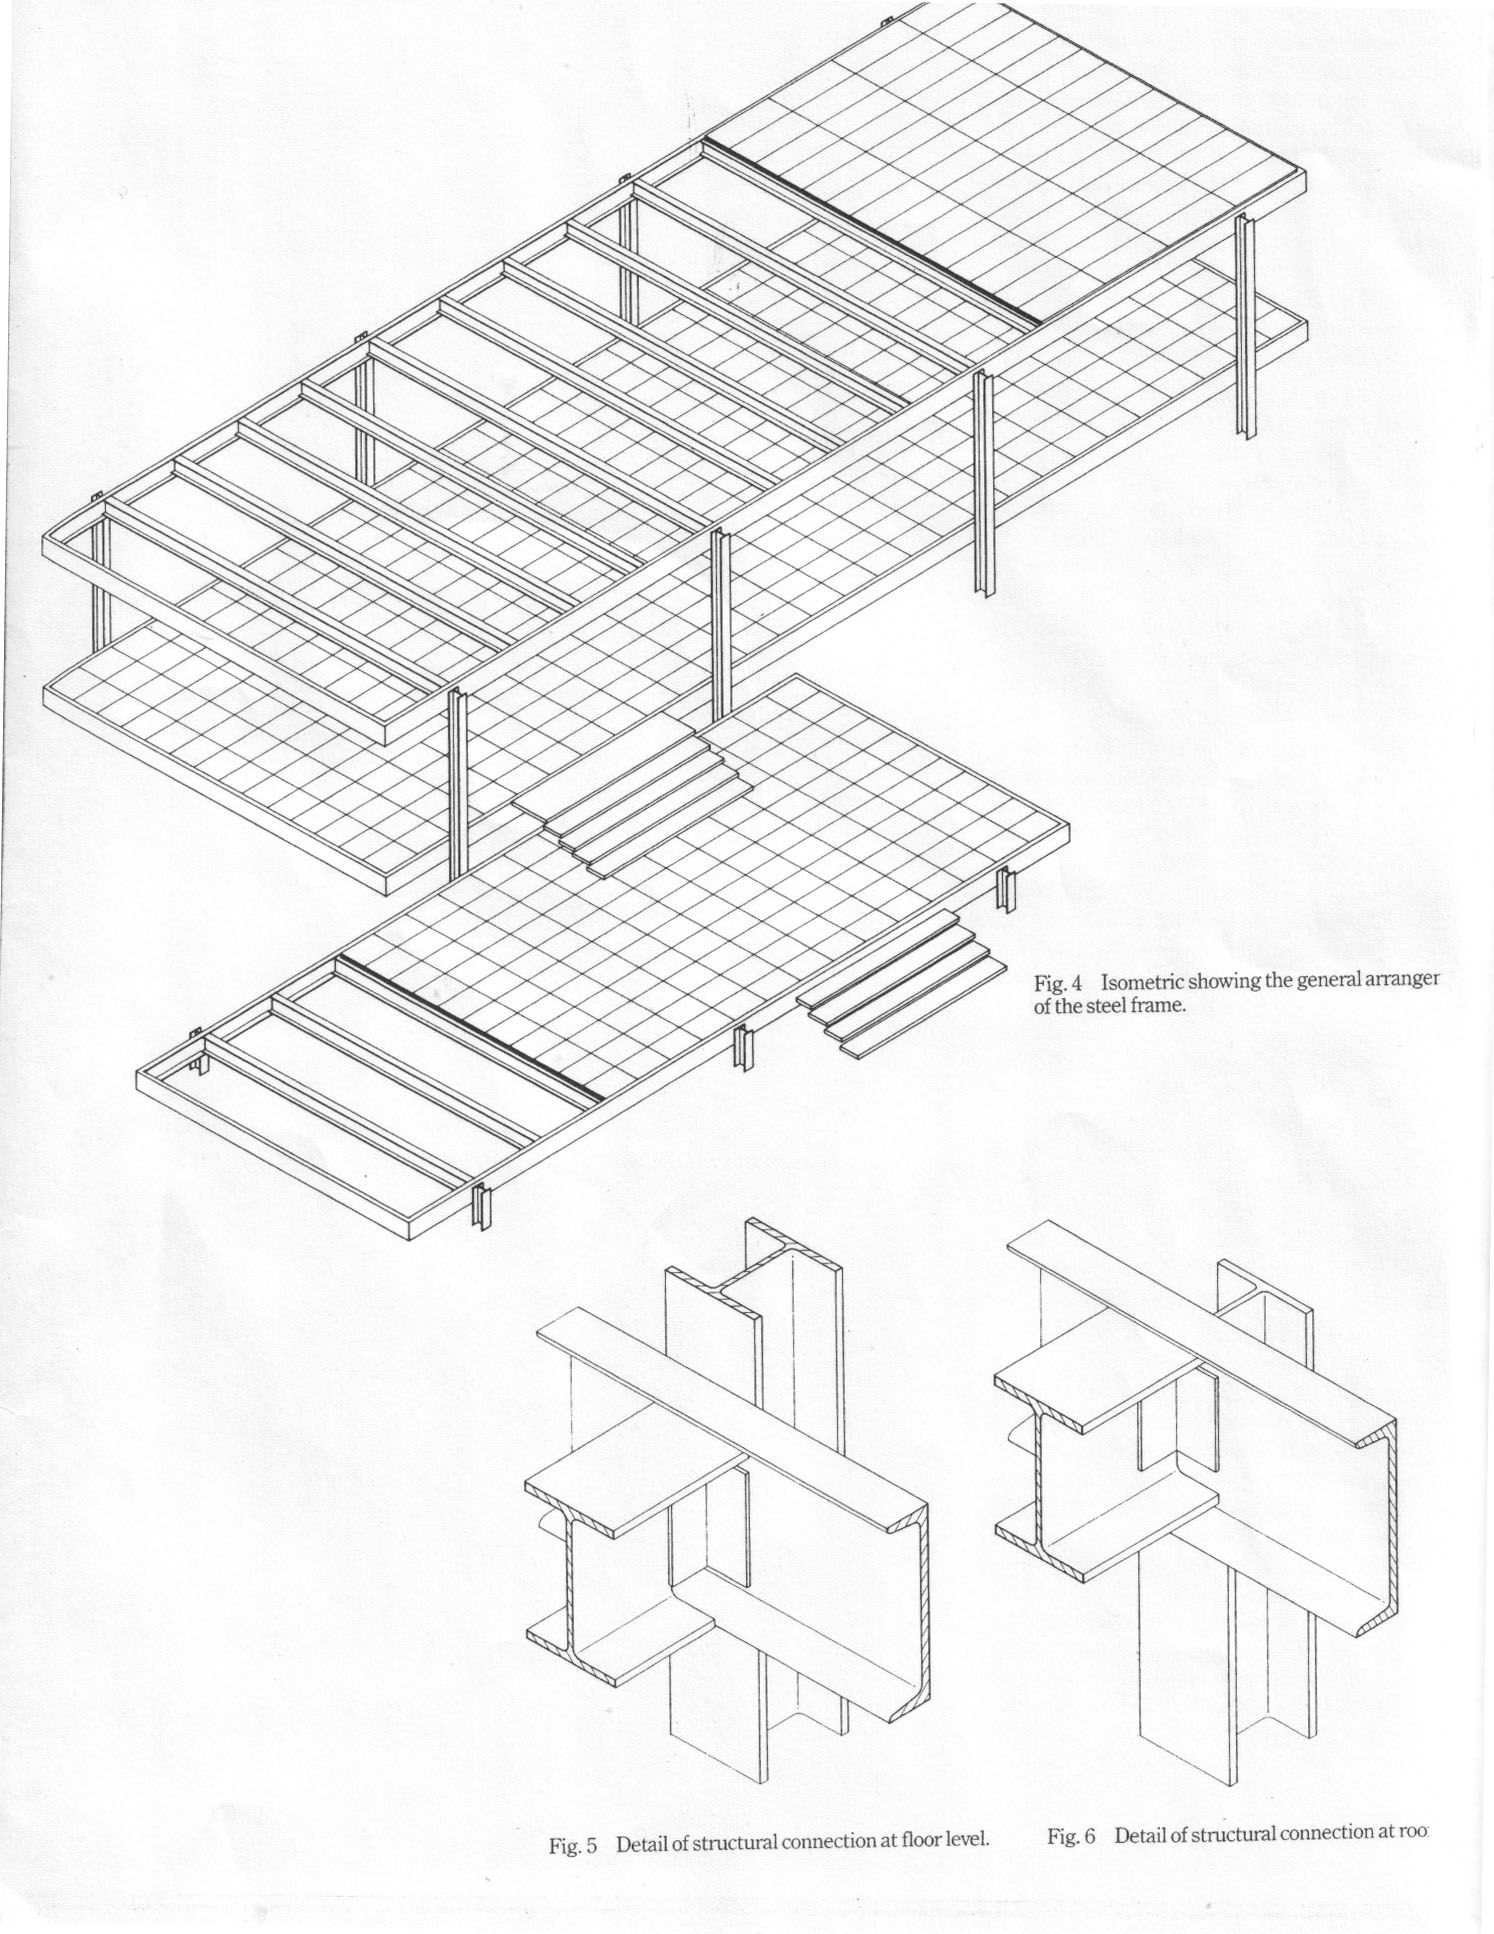 Mies van der rohe farnsworth house structure google search